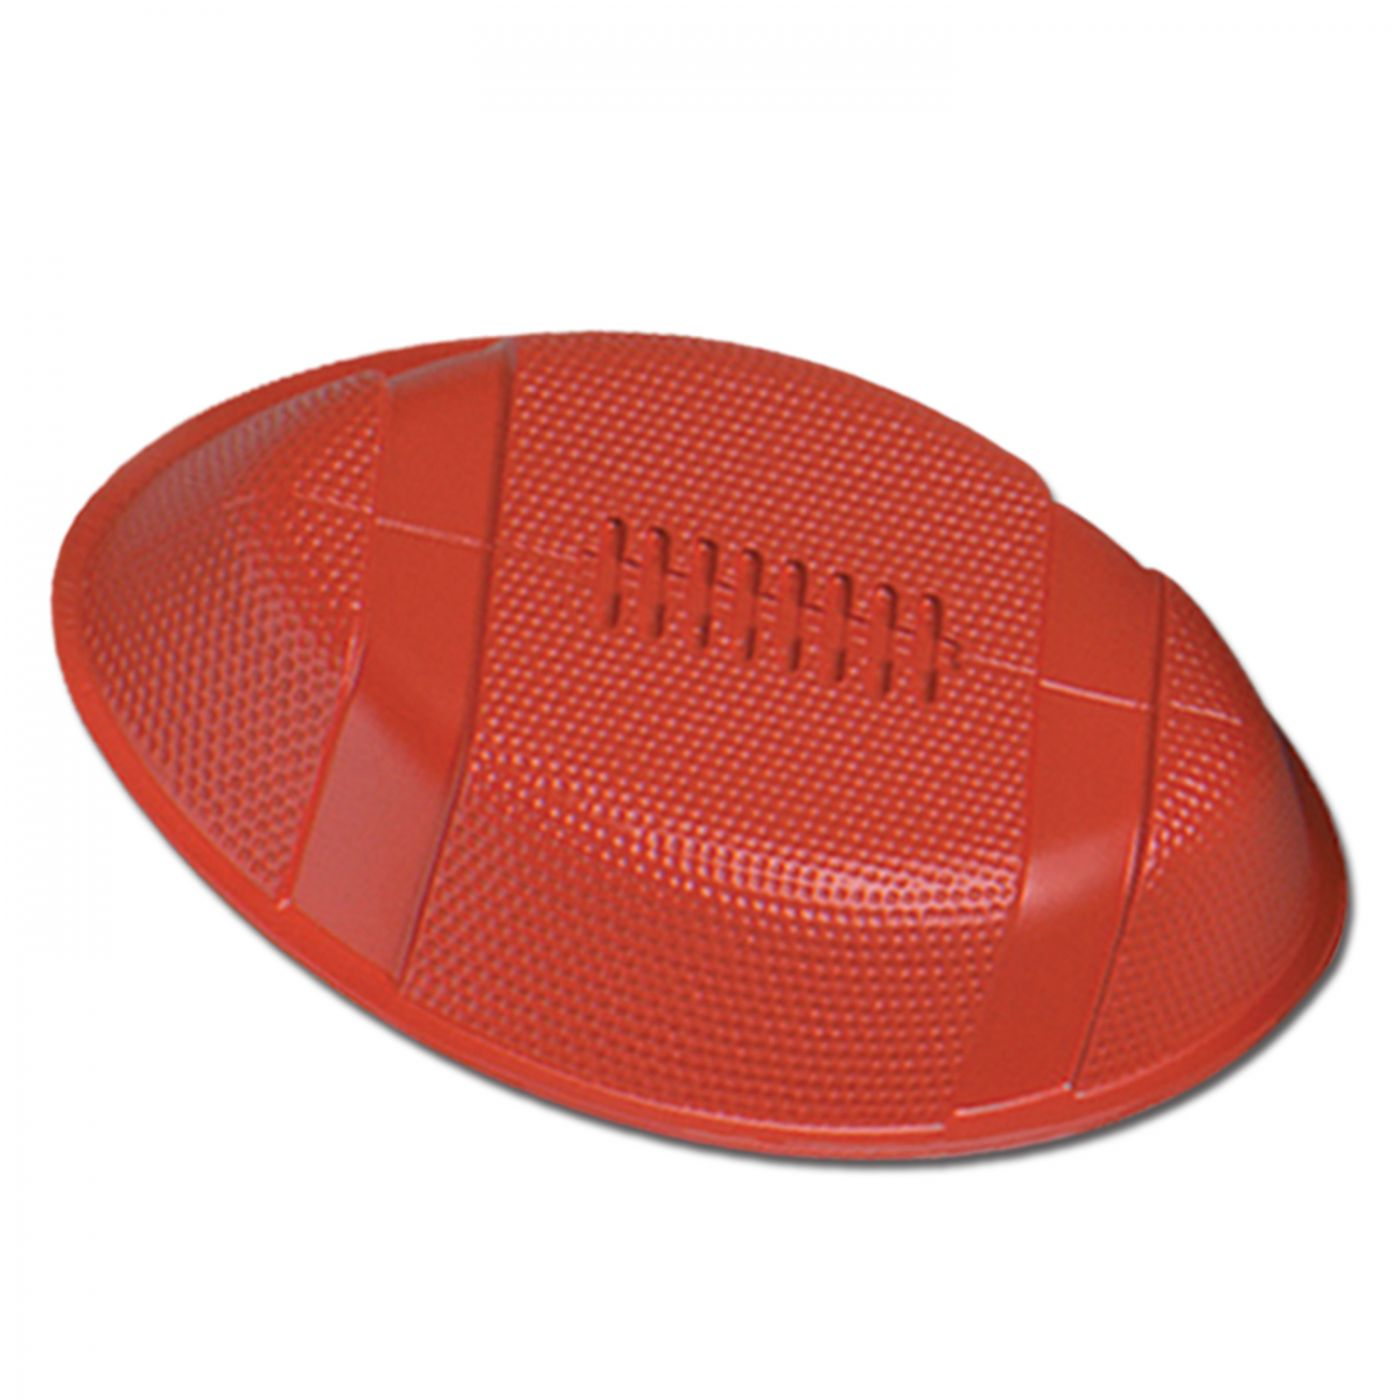 Plastic Football Tray (24) image